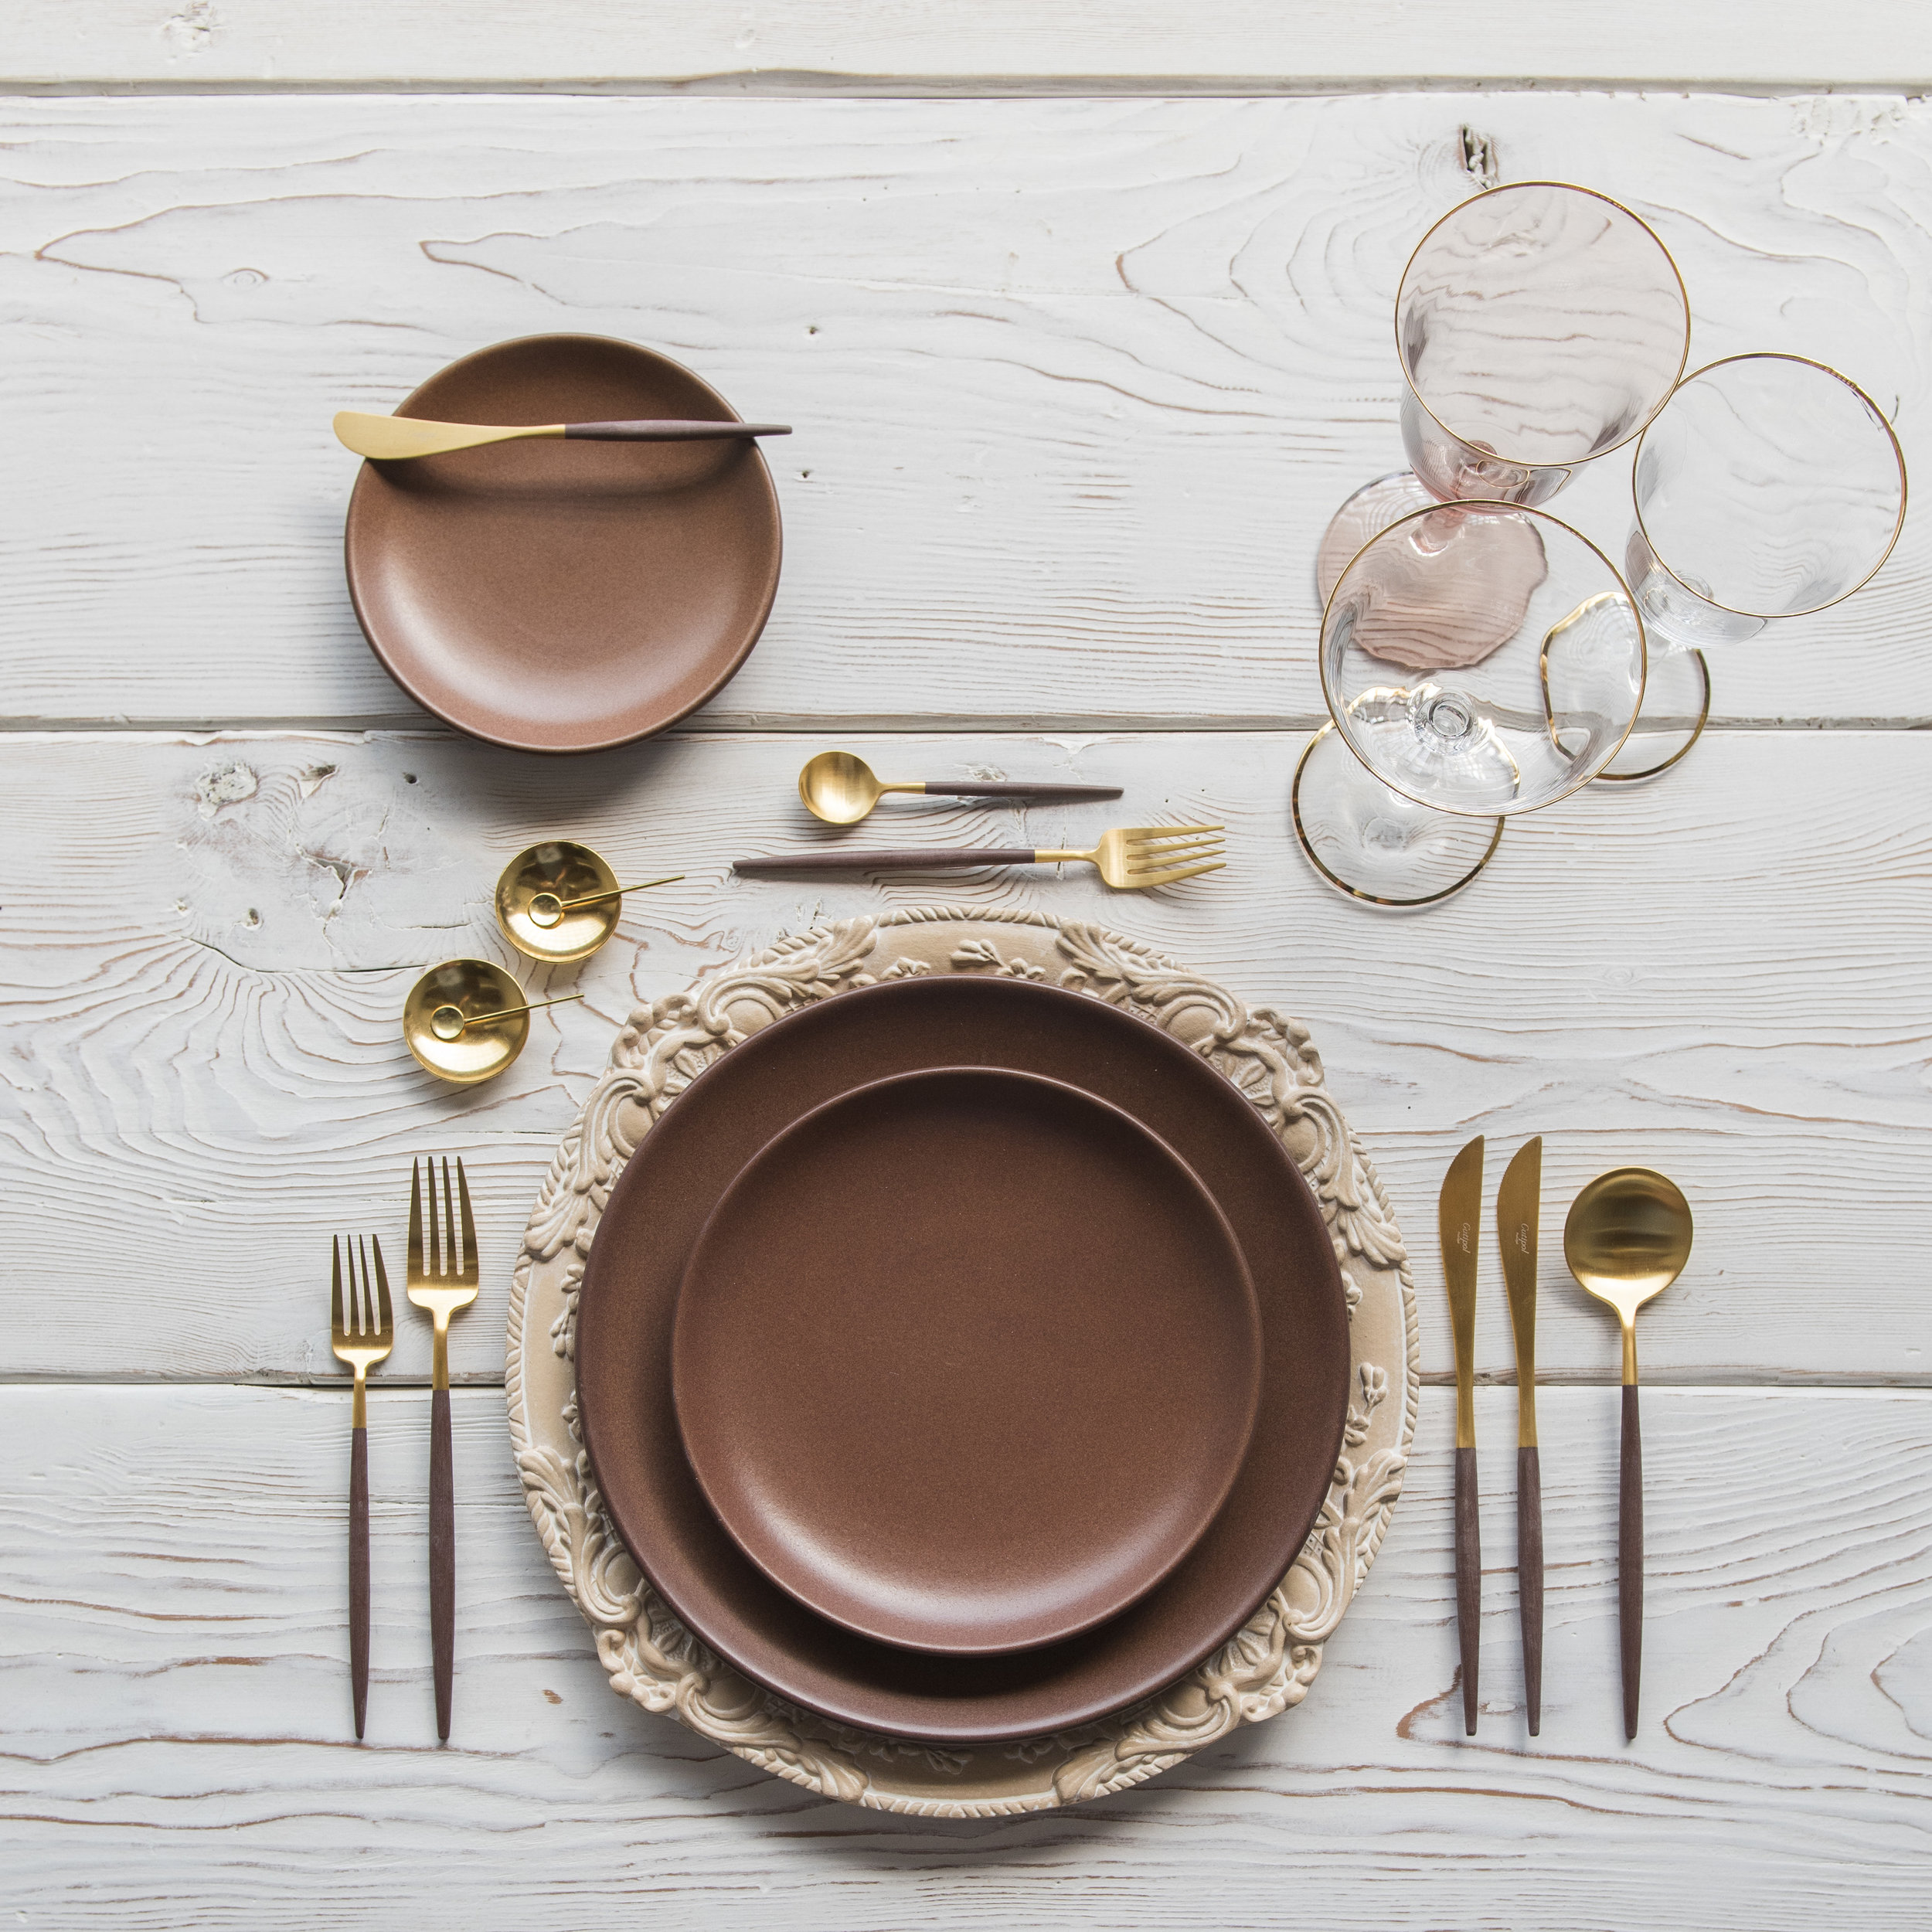 RENT: Verona Chargers in Terracotta + Heath Ceramics in Redwood + Goa Flatware in Brushed 24k Gold/Wood + Chloe 24k Gold Rimmed Stemware + Chloe 24k Gold Rimmed Goblet in Blush + 14k Gold Salt Cellars + Tiny Gold Spoons   SHOP: Verona Chargers in Terracotta + Goa Flatware in Brushed 24k Gold/Wood + Chloe 24k Gold Rimmed Stemware + 14k Gold Salt Cellars + Tiny Gold Spoons